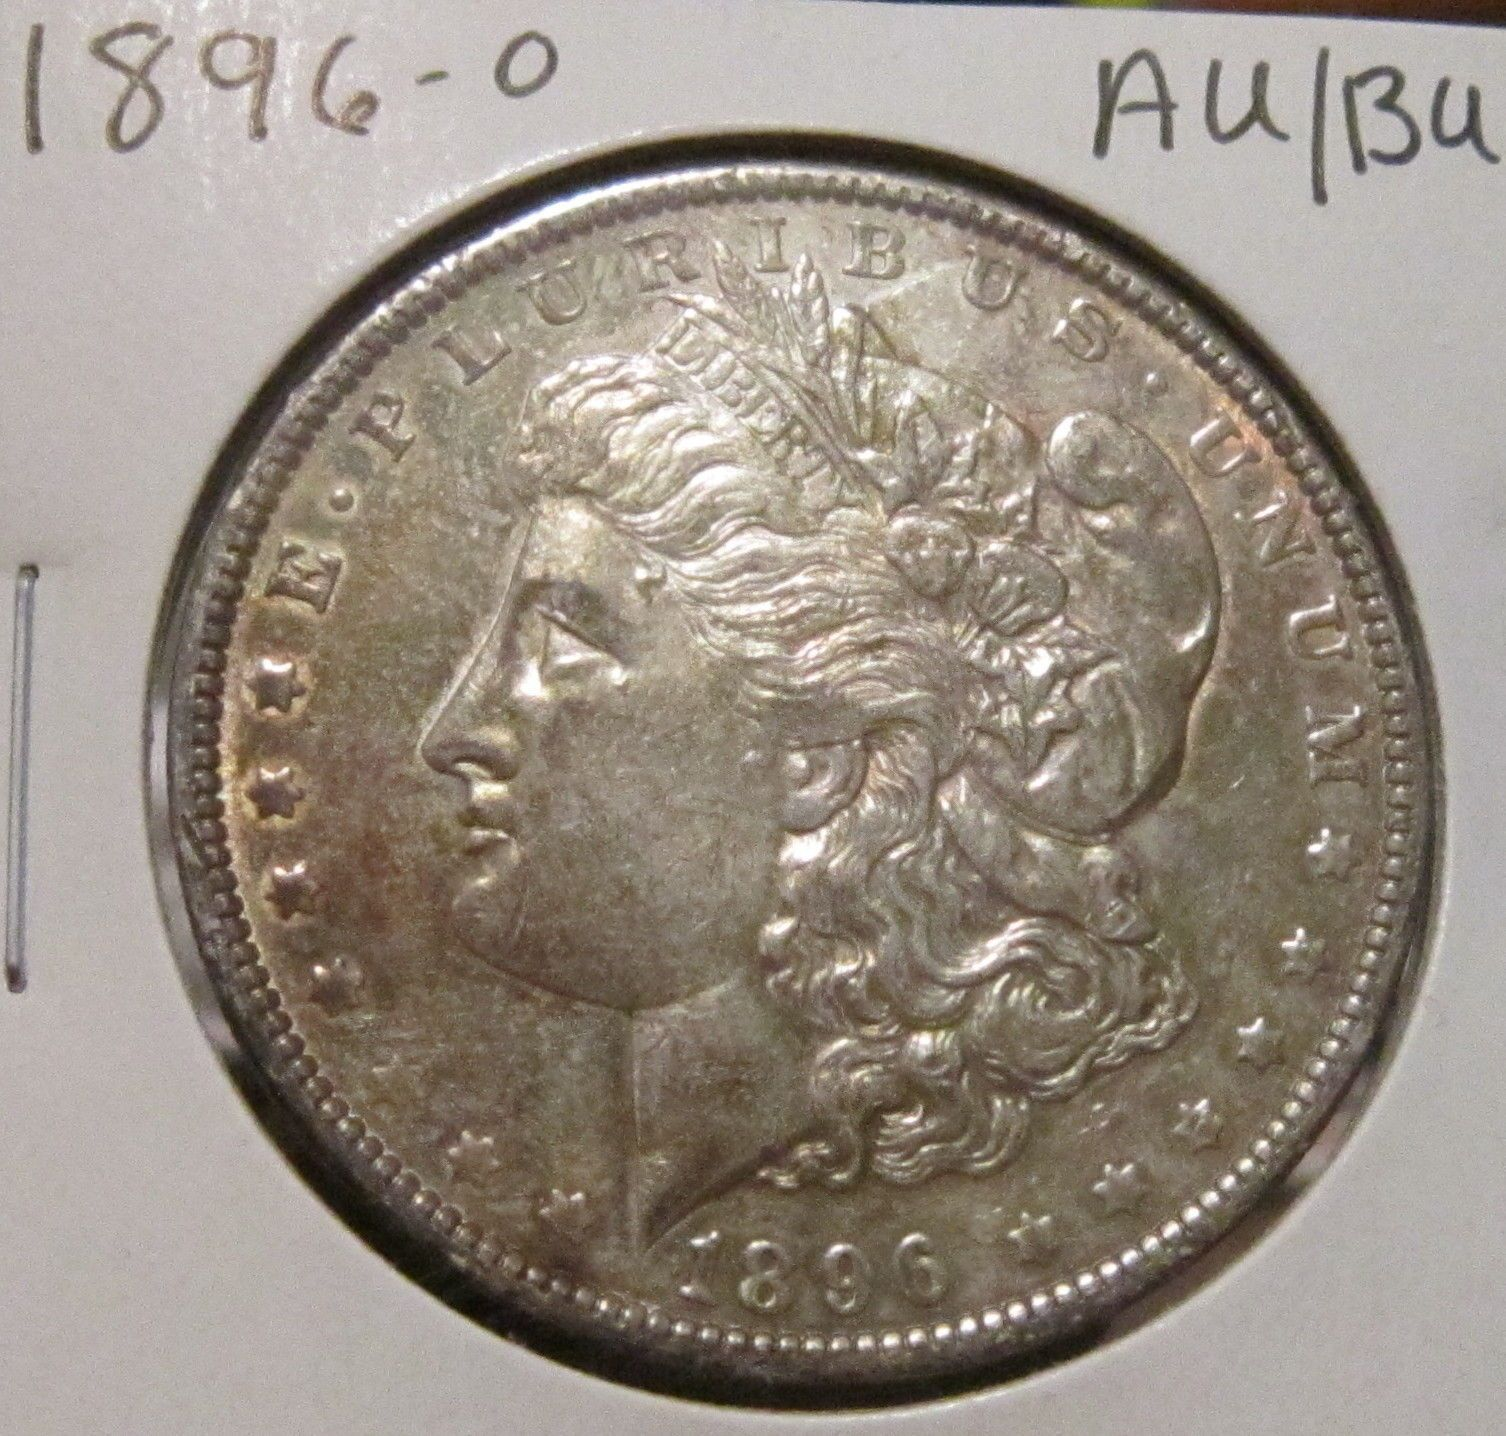 1896-O MORGAN SILVER DOLLAR AU / BU RARE HIGH GRADE KEY DATE US SILVER COIN!!!!! https://t.co/bb2SGwJwzn https://t.co/edkDkwEq0k